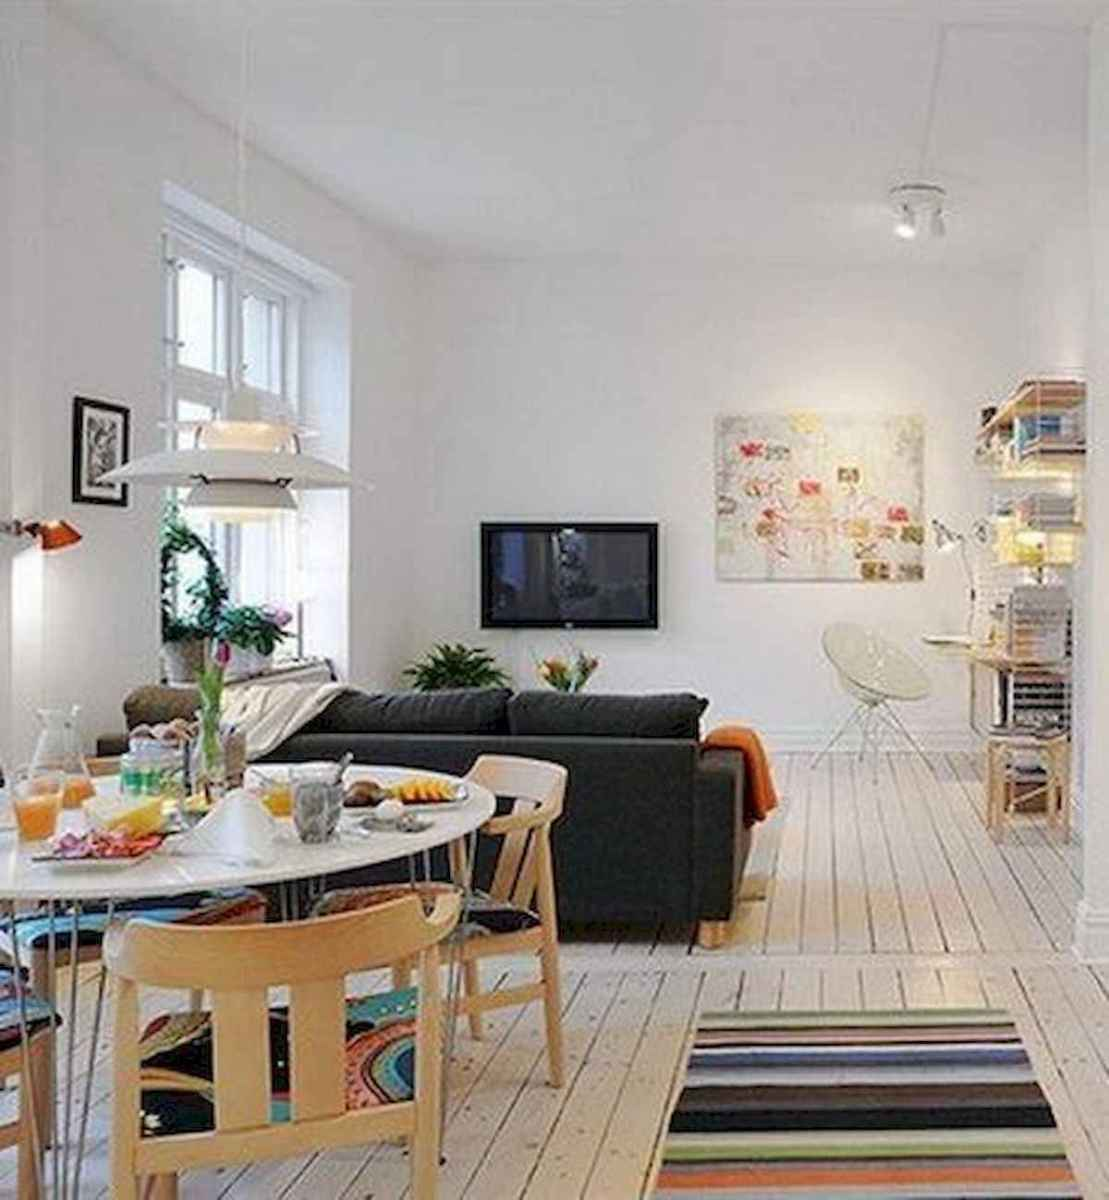 50+ Genius Small Living Room Decor Ideas And Remodel for Your First Apartment (23)